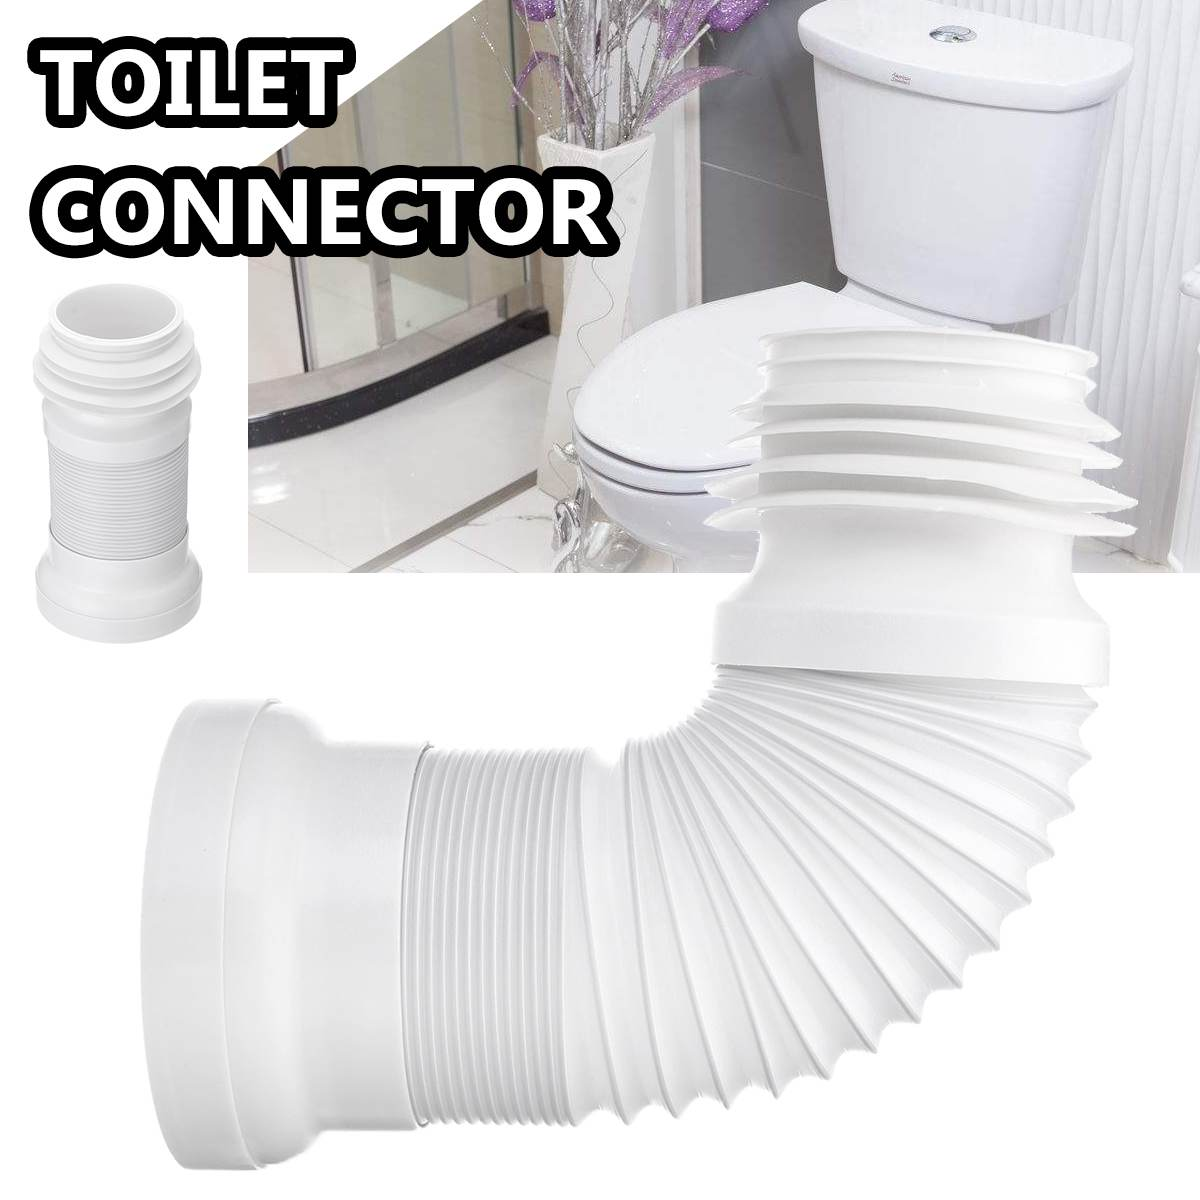 23-50cm PVC Retractable Toilet Bowl Displacement Shifter Sewer Sewage Plumbing Hoses Water Pipe Connector Hose